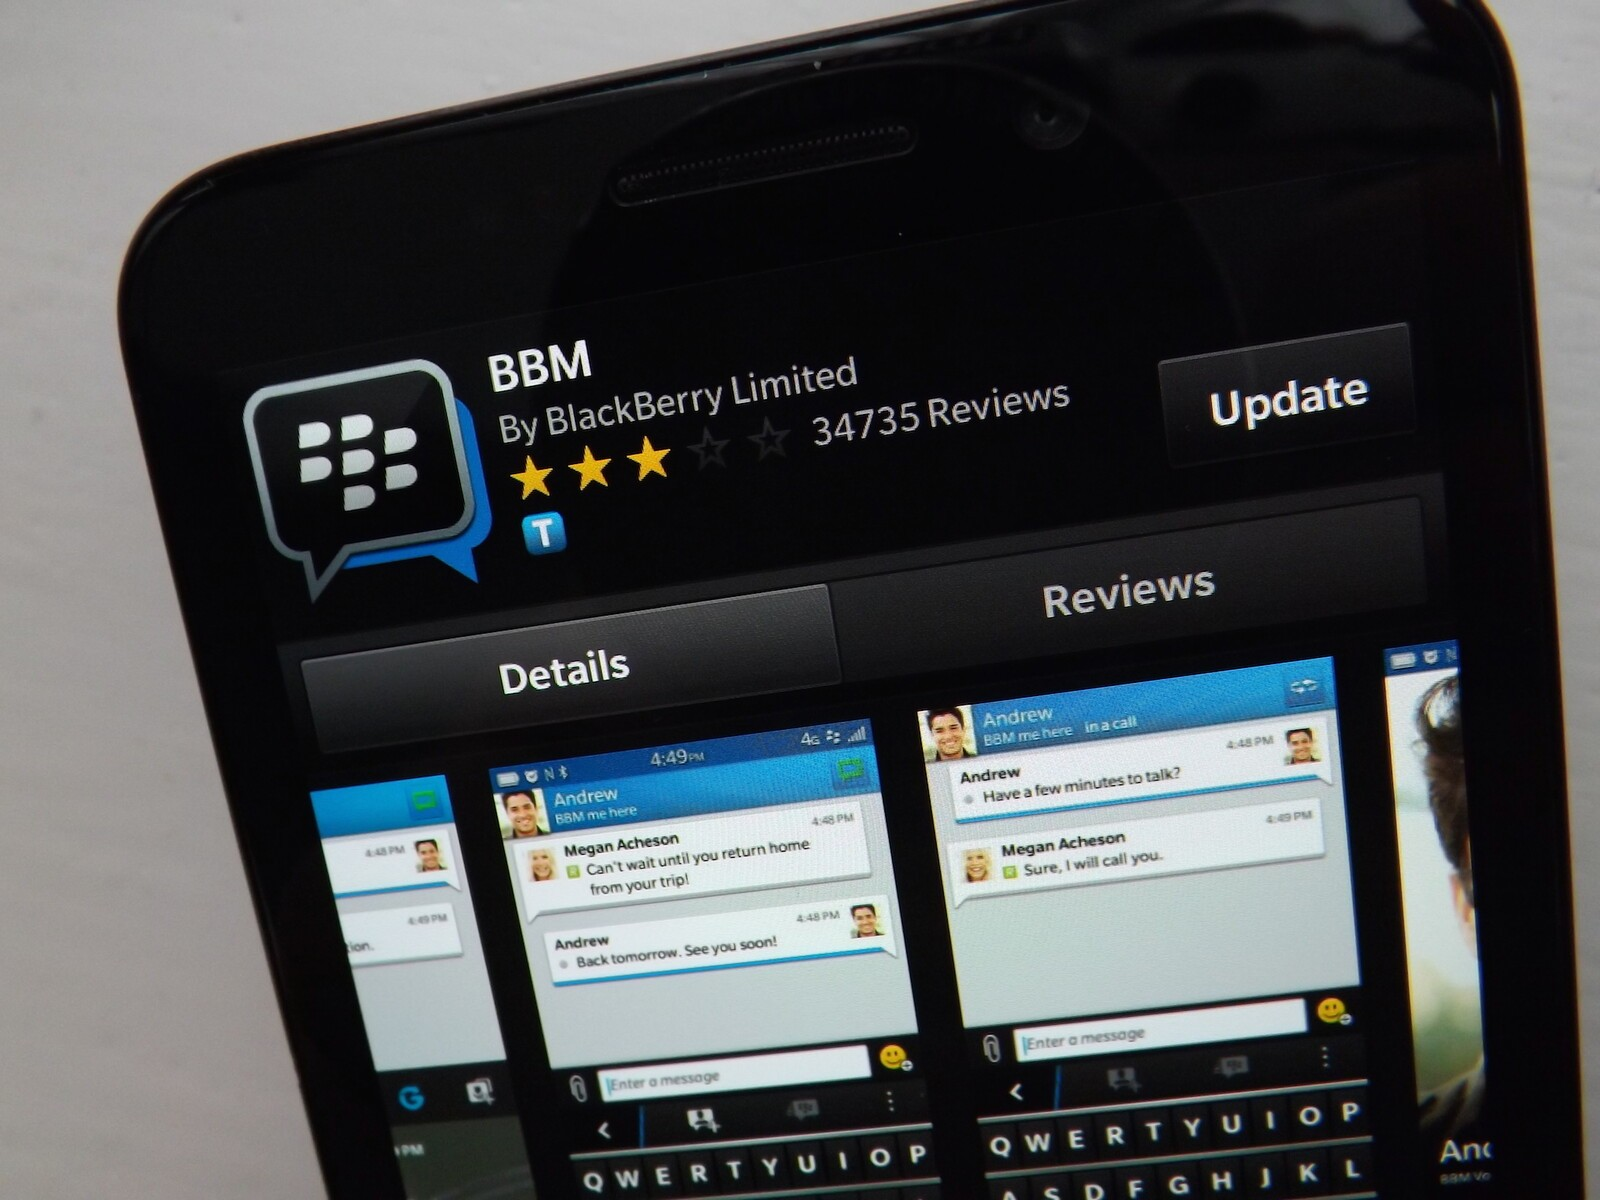 BlackBerry Messenger Consumer Service Sets To Shut Down